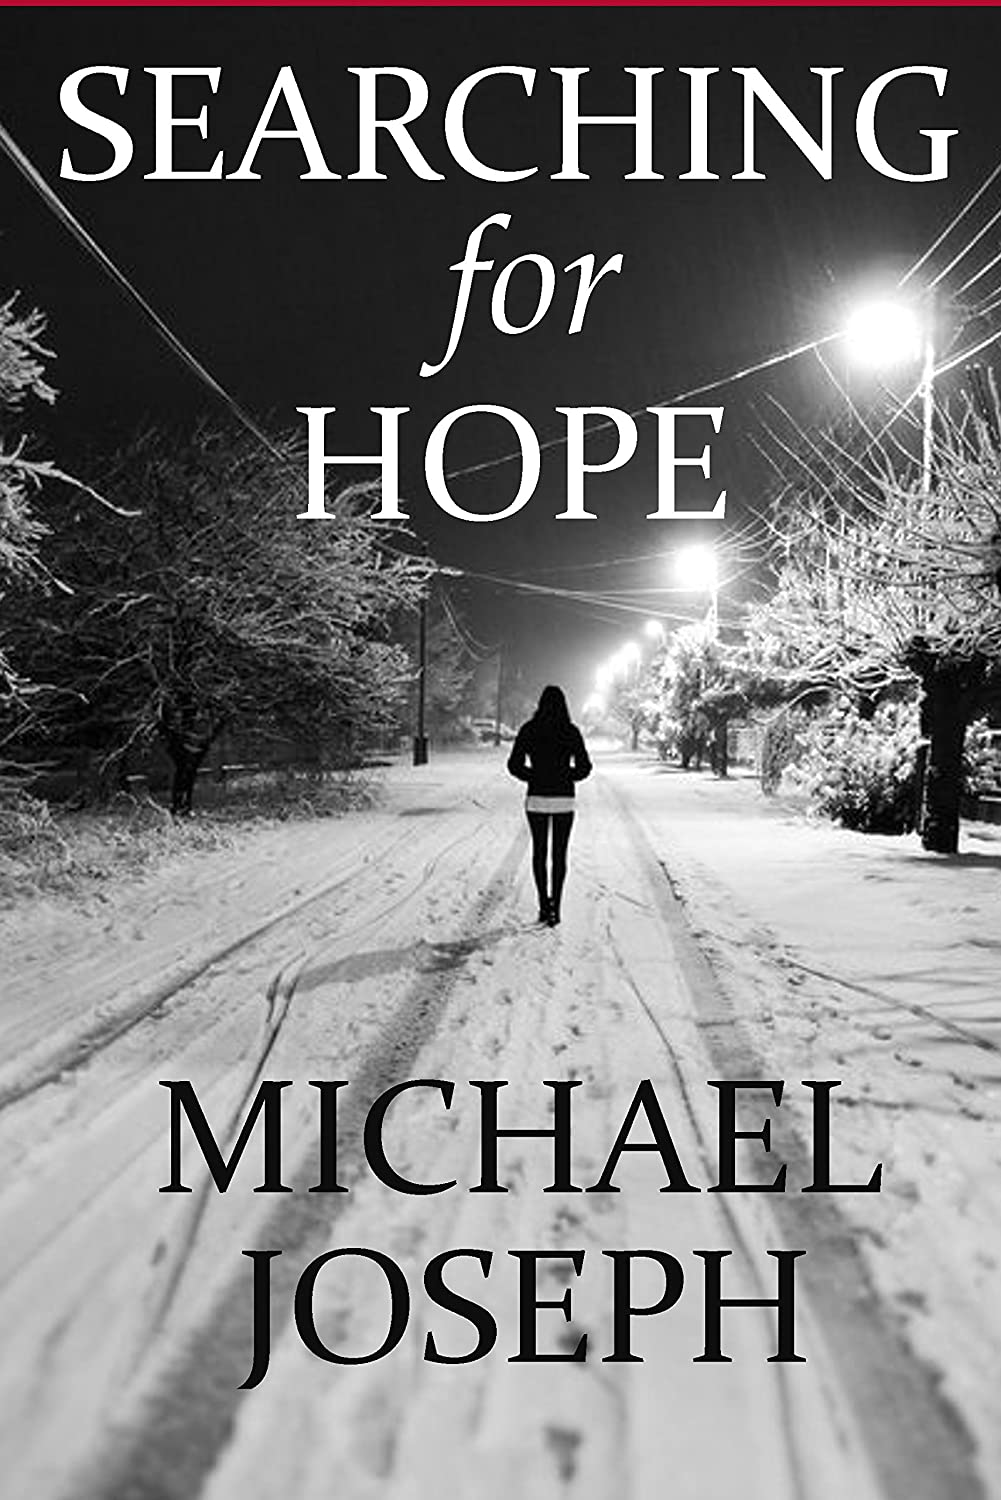 Searching-For-Hope-book-cover